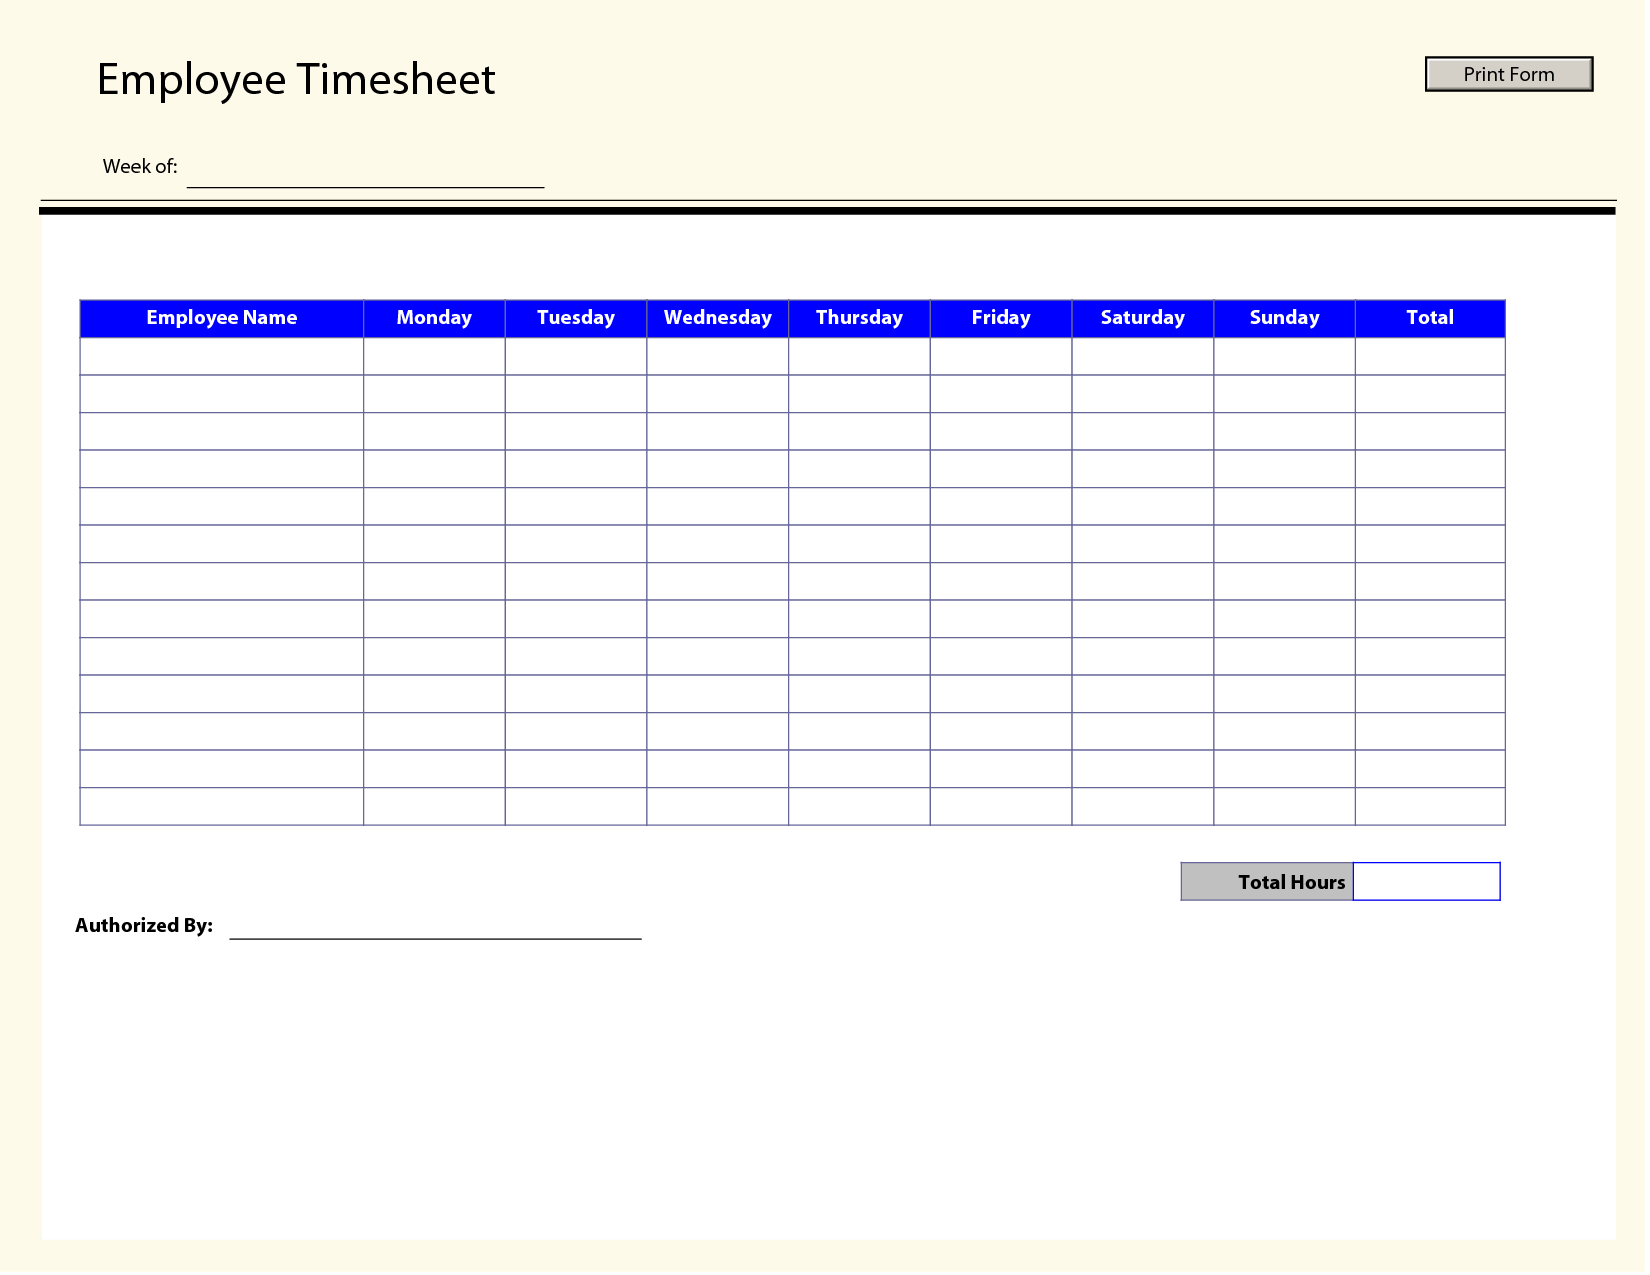 Debt Management Spreadsheet and Printable Time Sheets Free Printable Employee Timesheets